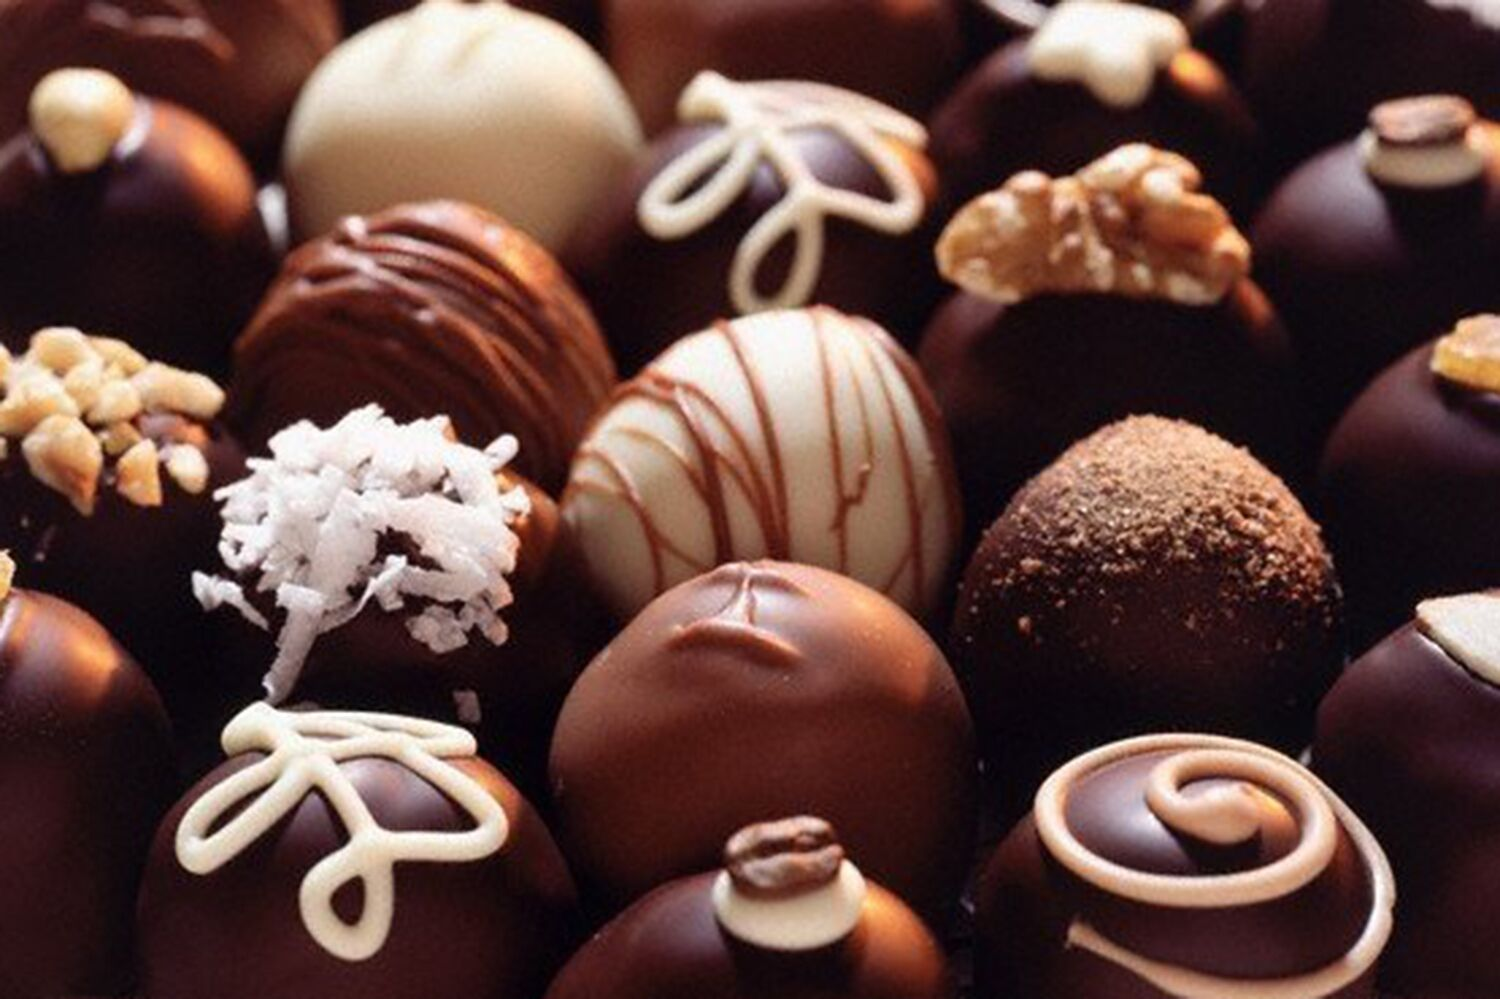 """Browse our online  Choc Store  for our mixed Chocolate Box selections of """"Belgium Style Chocolate"""" pralines and truffles. We'll deliver your favourite chocolate direct to your door."""